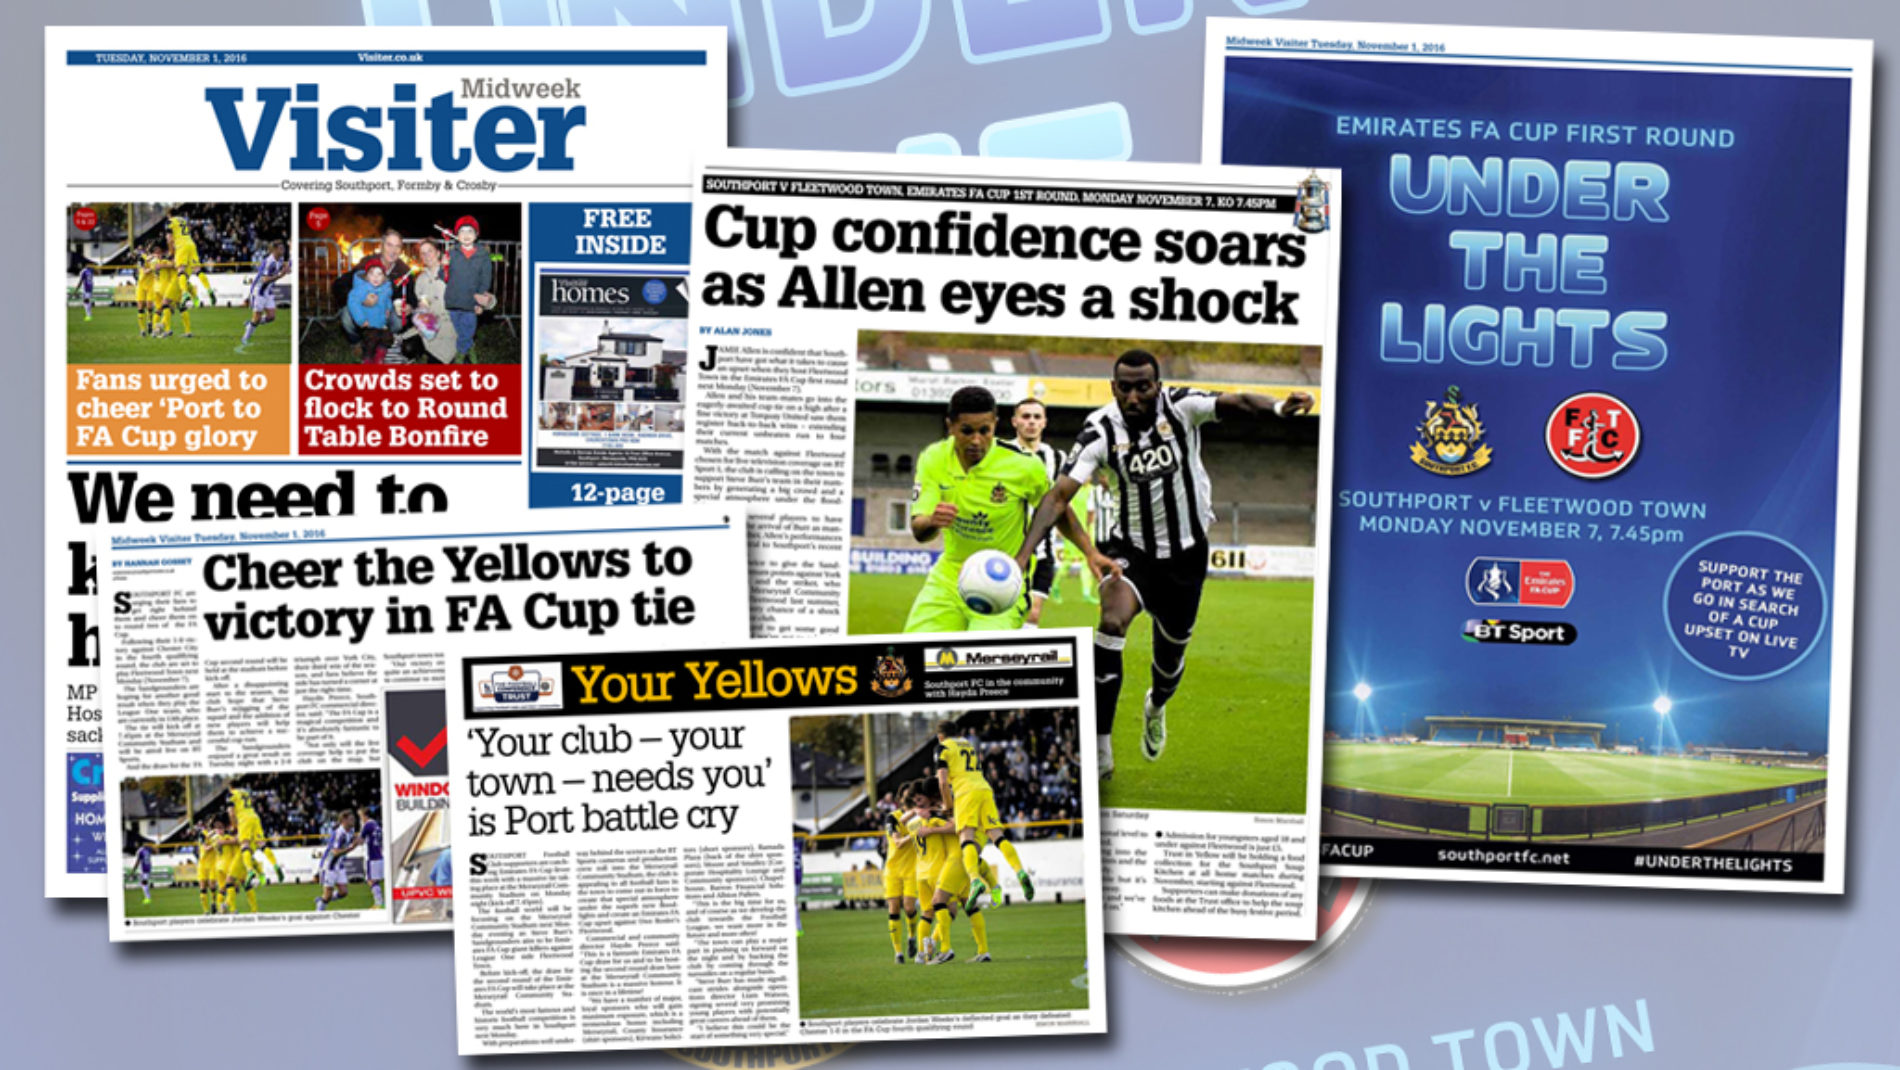 EMIRATES FA CUP | Midweek Visiter Coverage